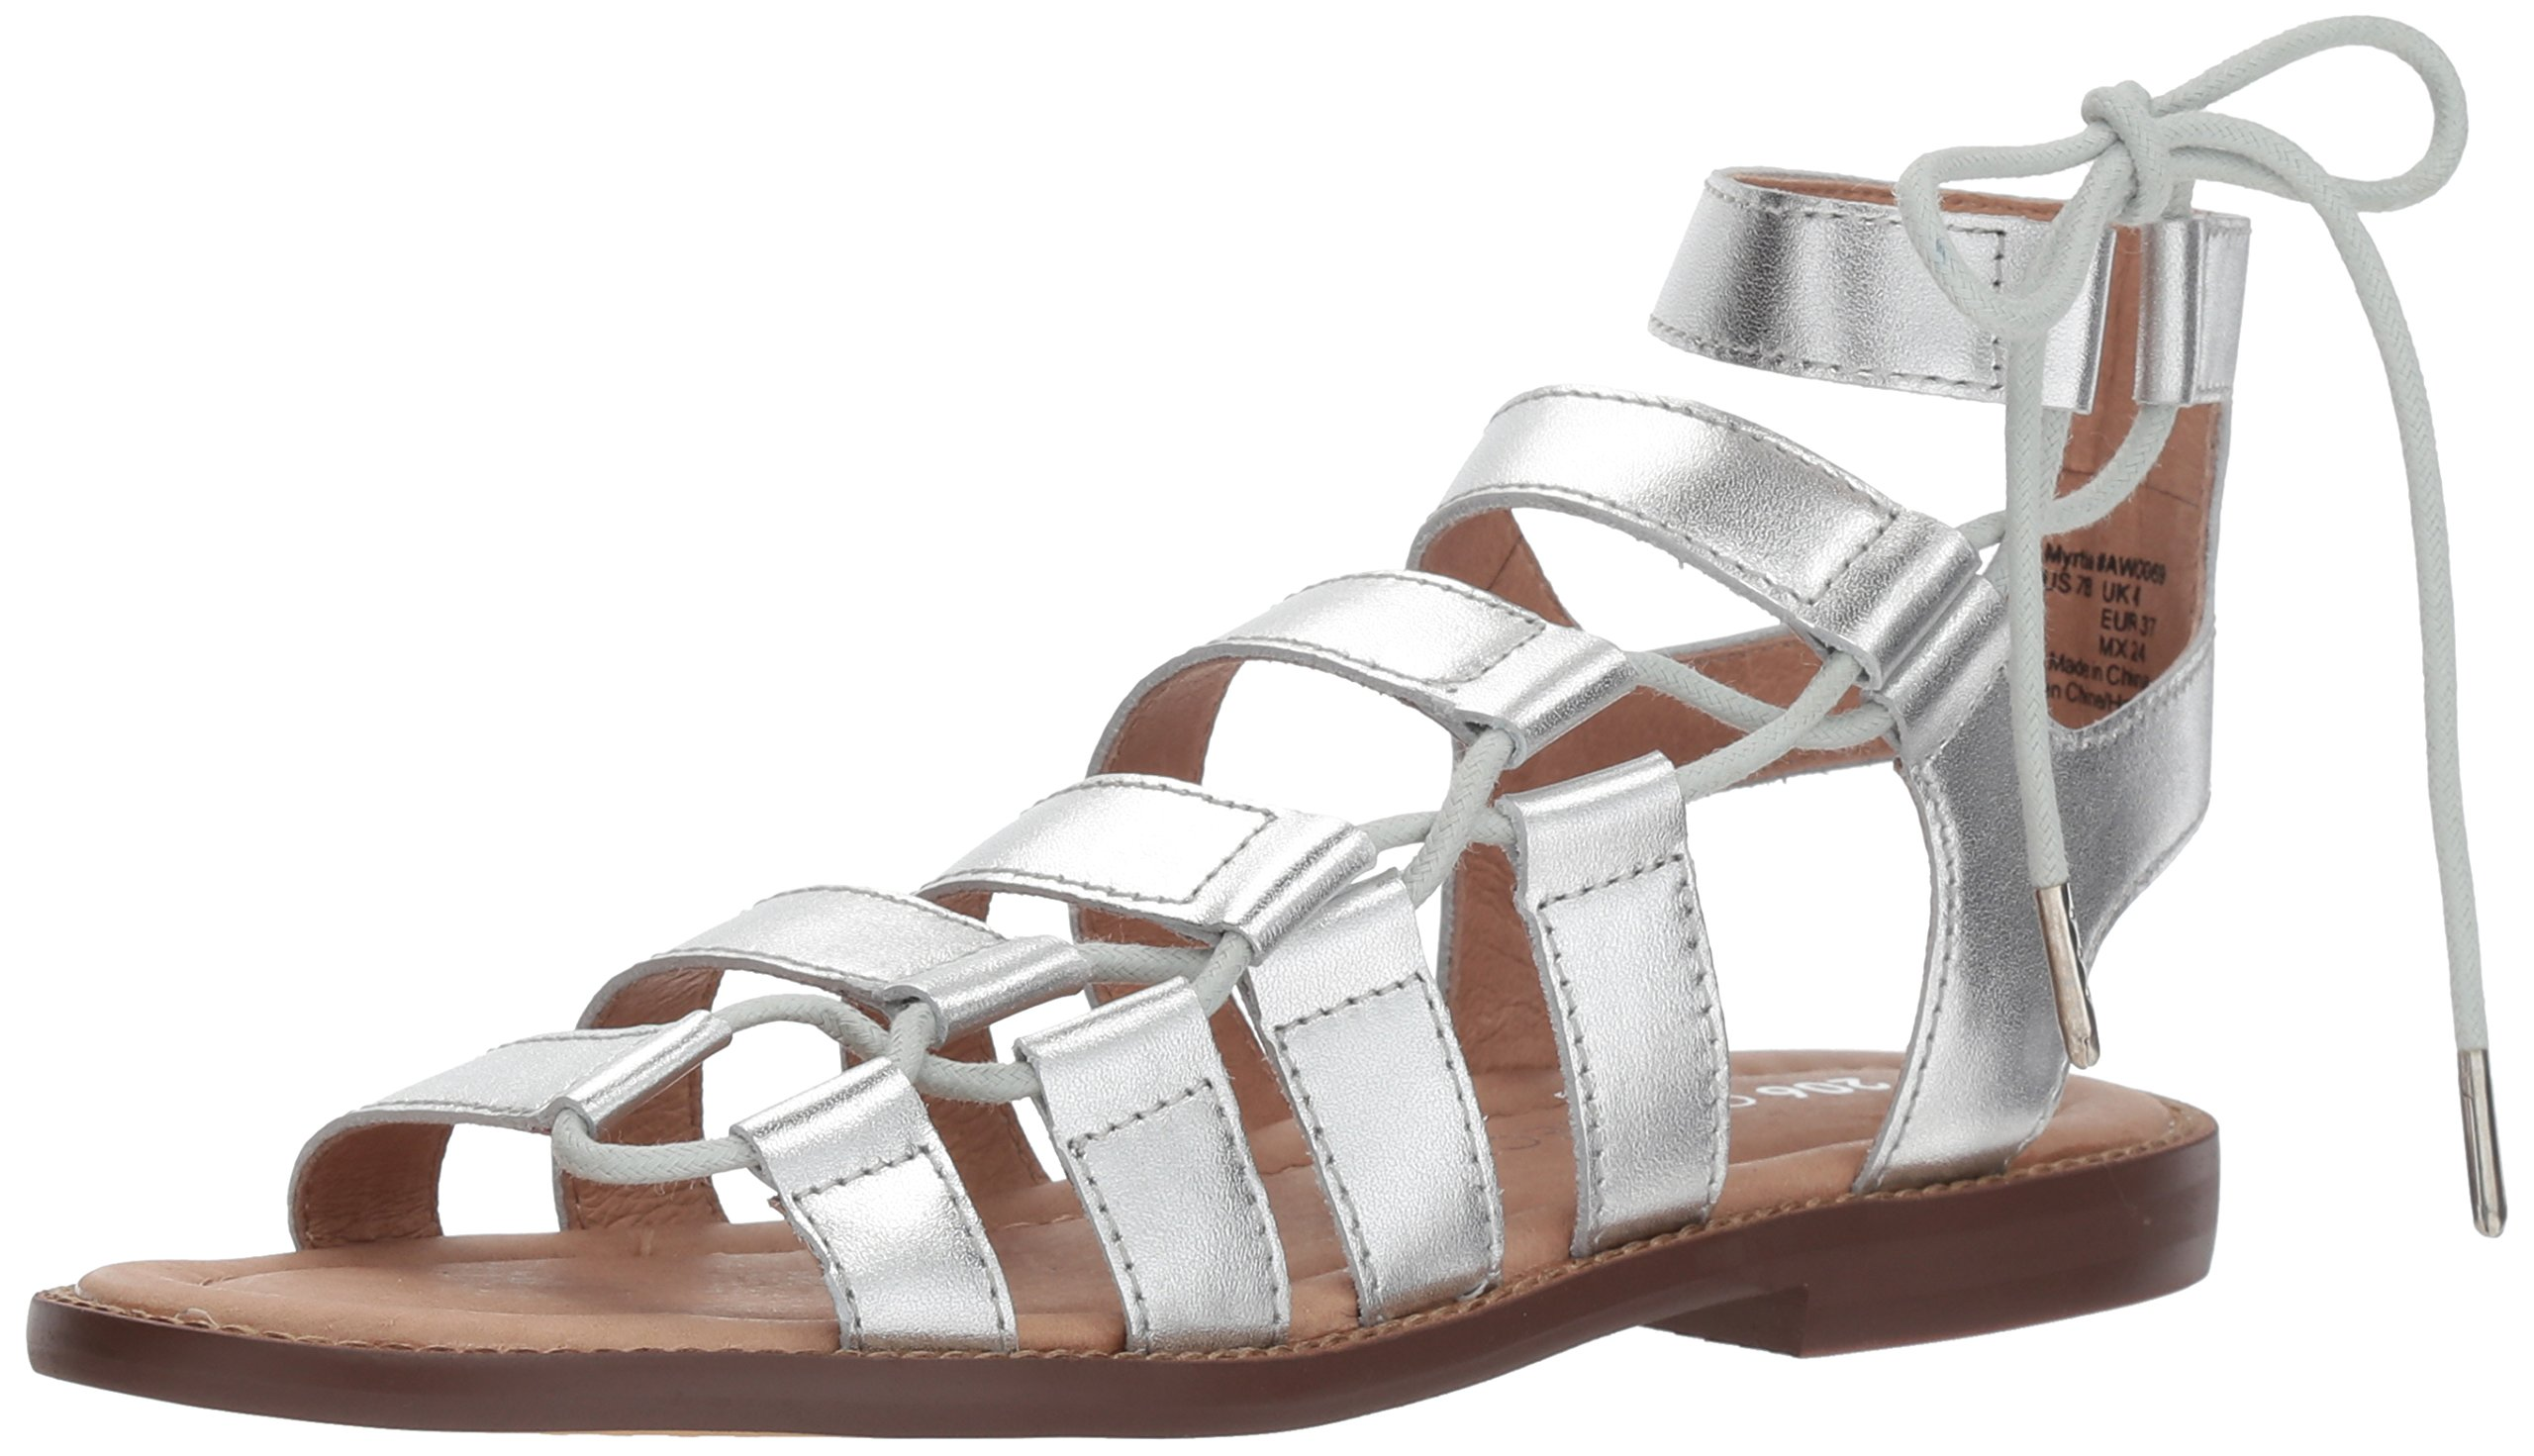 206 Collective Women's Myrtle Gladiator Fashion Flat Sandal, Silver Leather, 7.5 B US